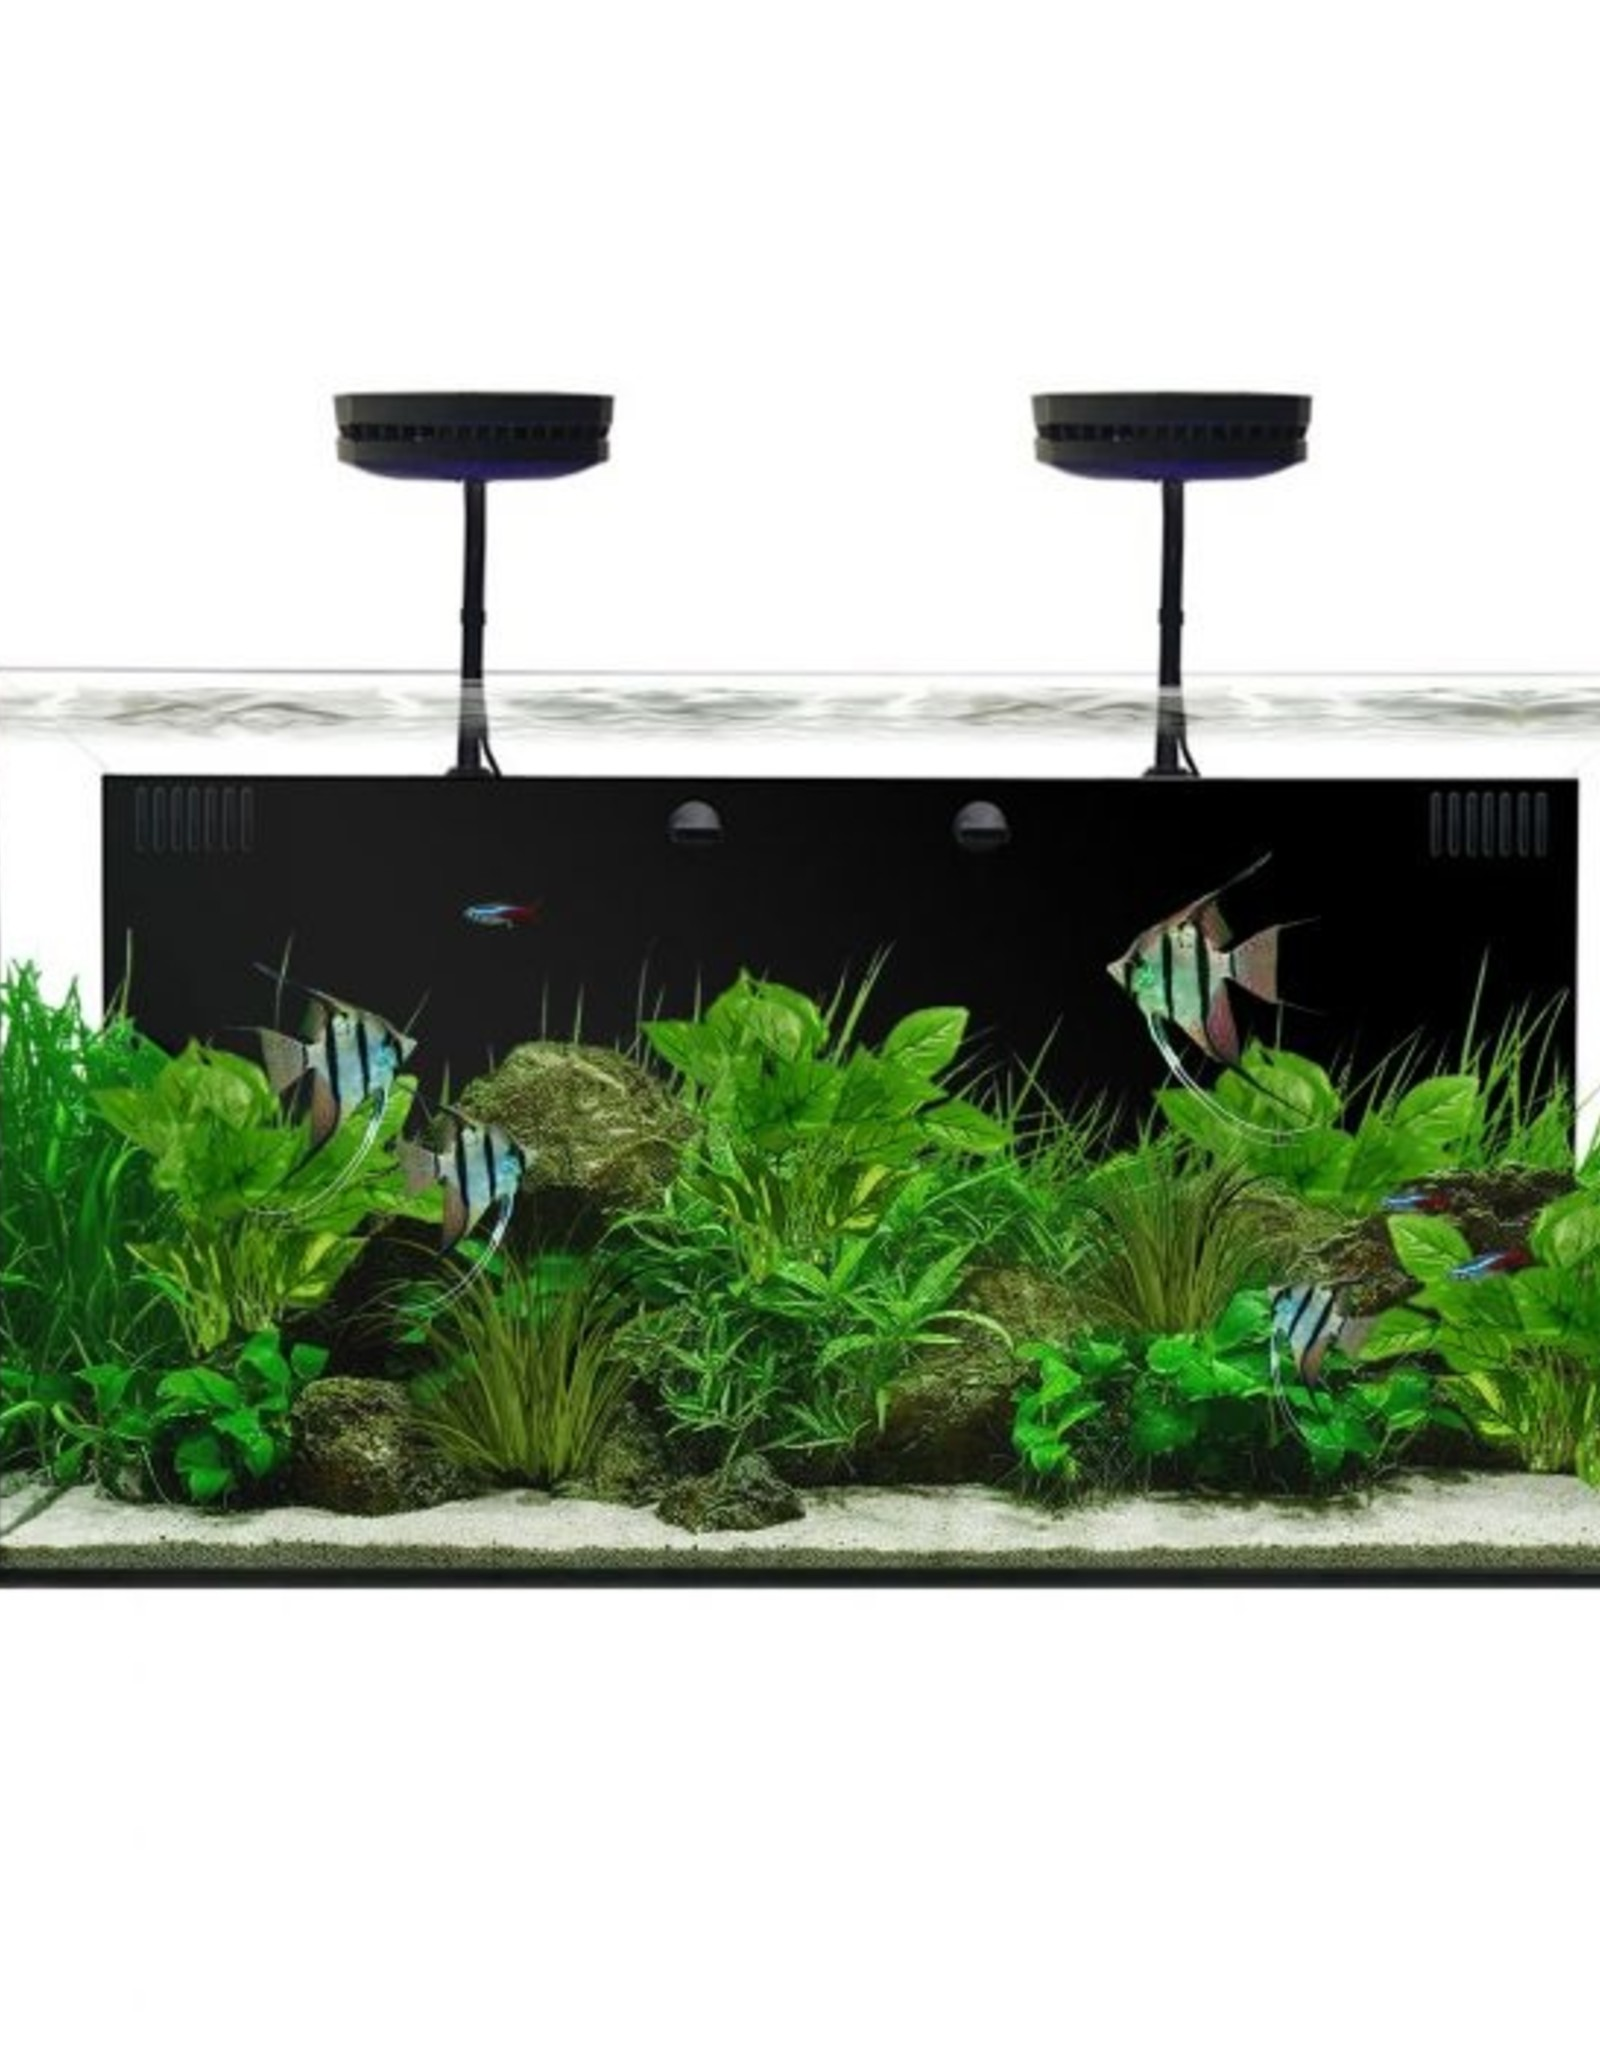 Waterbox Aquariums Waterbox Aquarium, 50.3 All-in-one Freshwater Plus